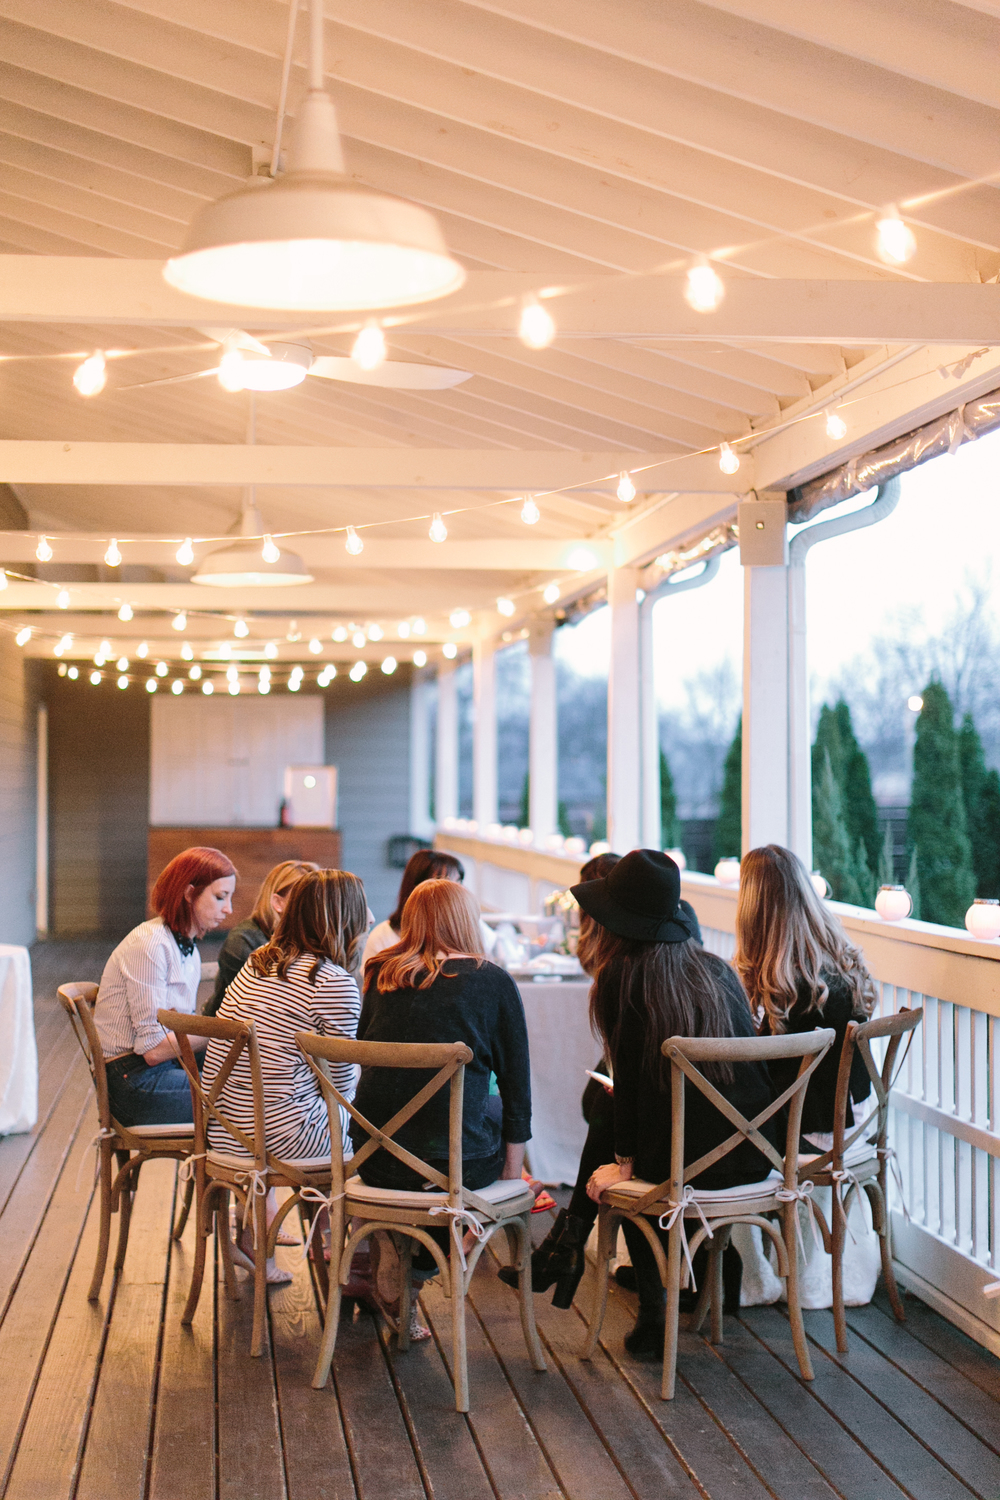 speed dating-workshop-creatives-community over competition-outdoor seating-porch inspiration-southern style-string lights-